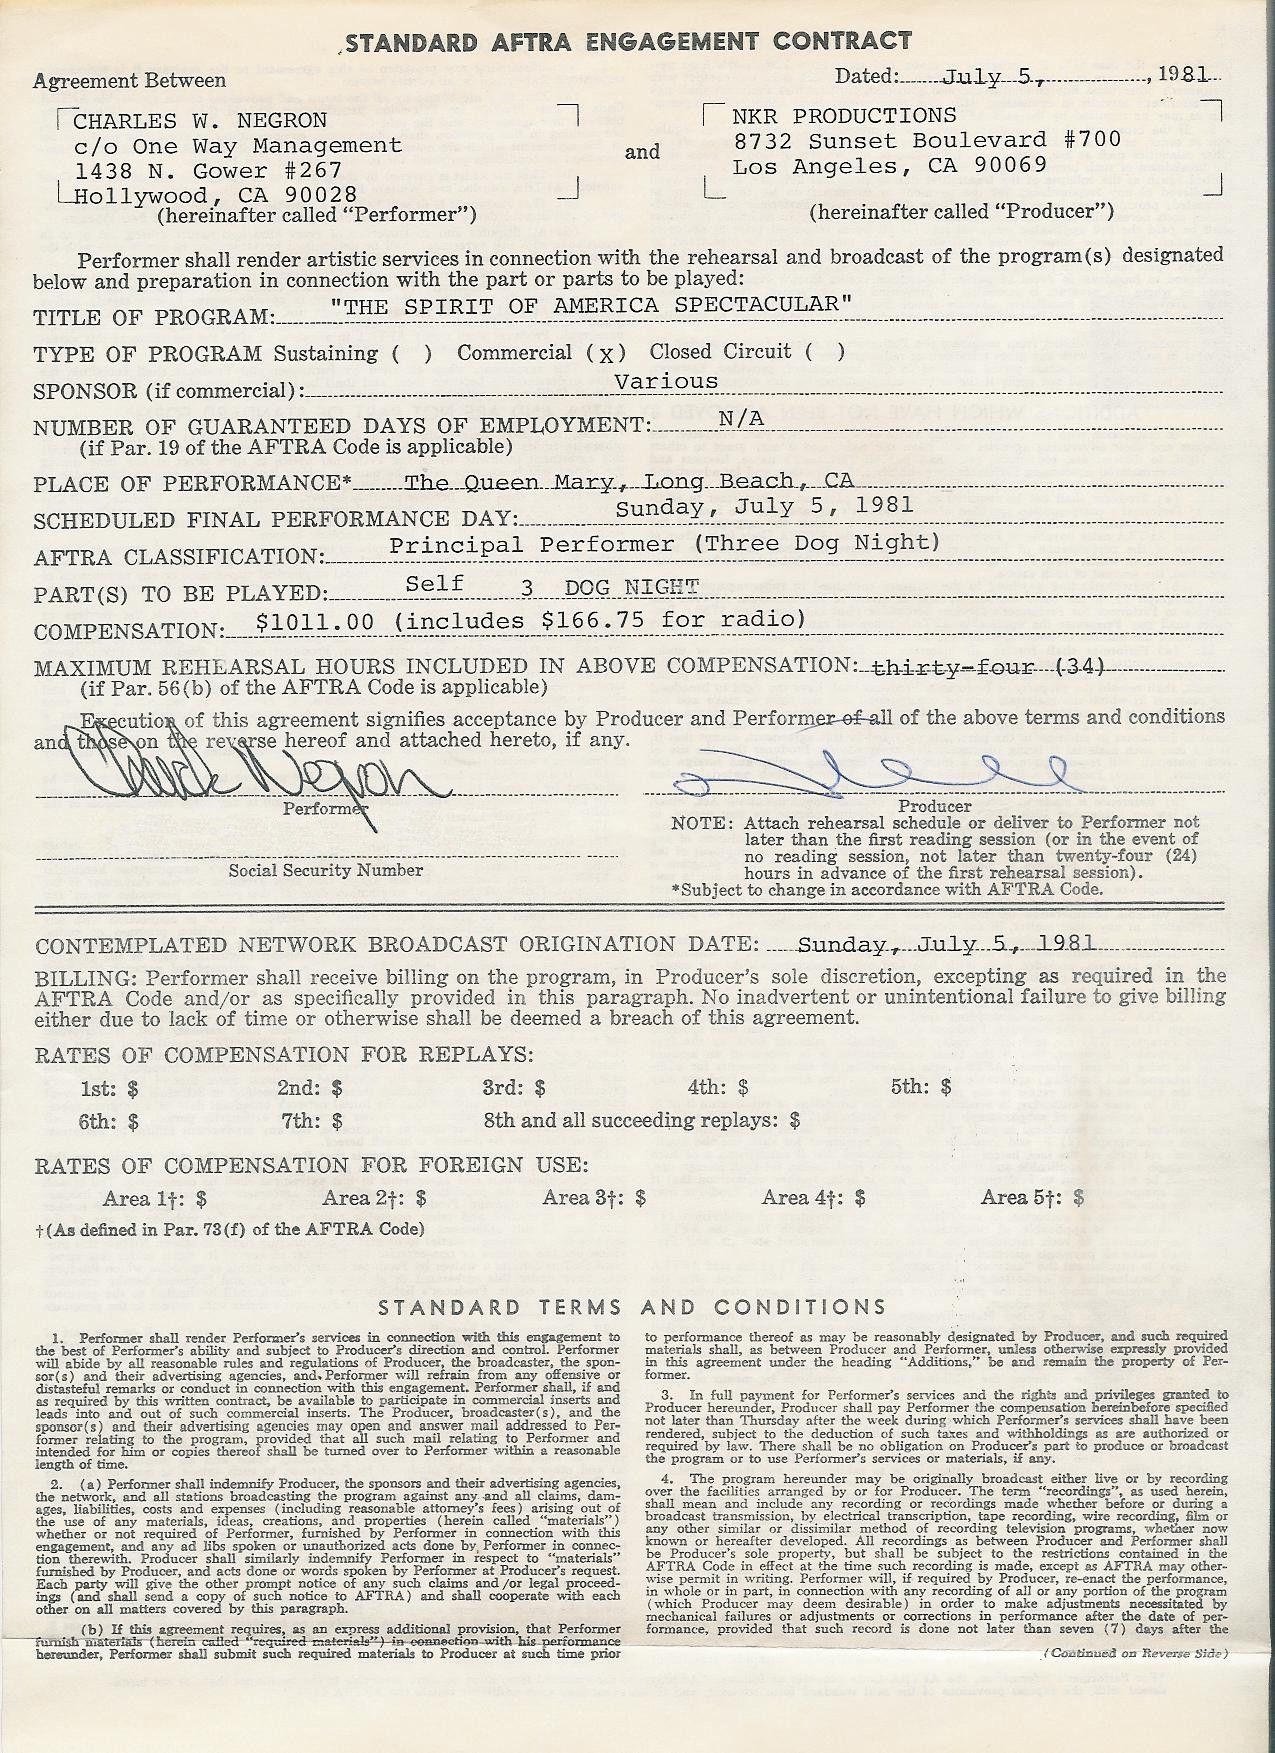 Chuck Negron Contract Page 1